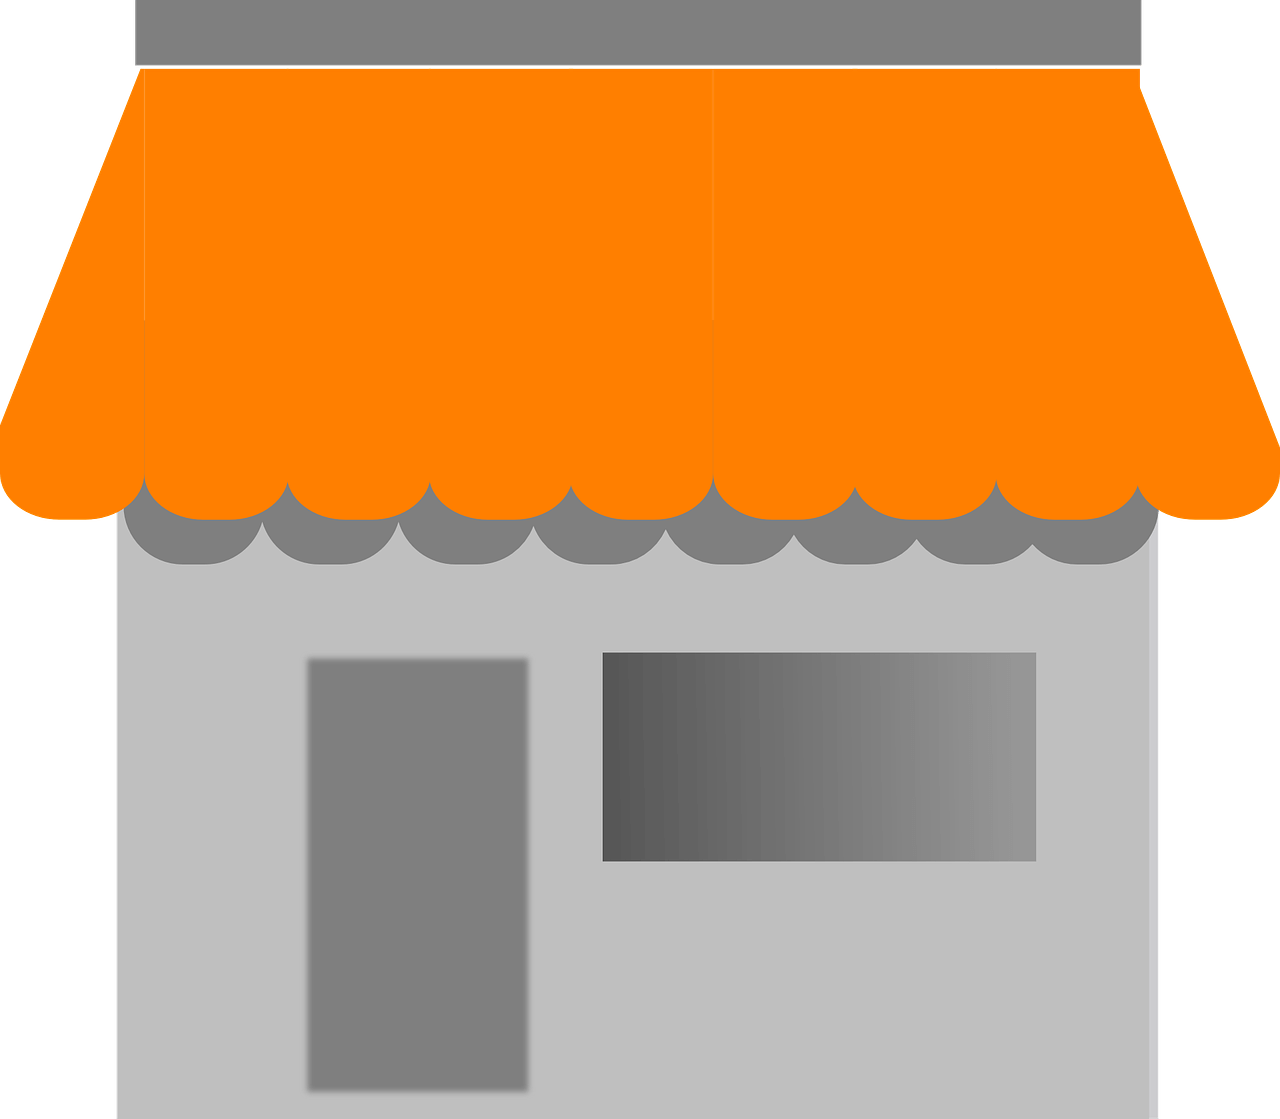 icon of a storefront